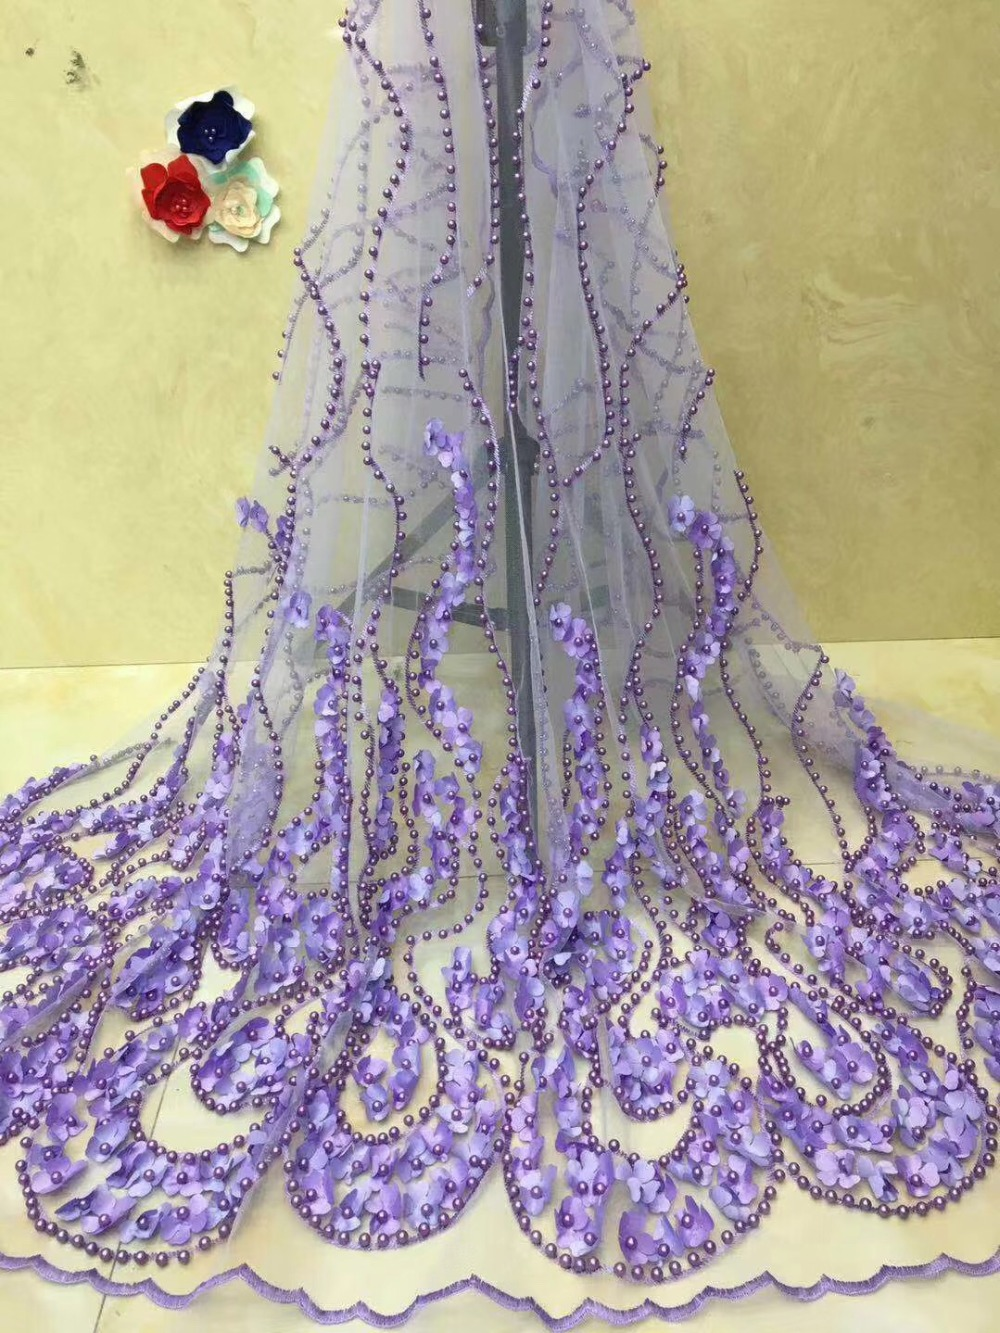 Latest French Nigerian Lace Fabric High Quality Tulle African Lace Fabric For Wedding African French Tulle Lace FabricLatest French Nigerian Lace Fabric High Quality Tulle African Lace Fabric For Wedding African French Tulle Lace Fabric